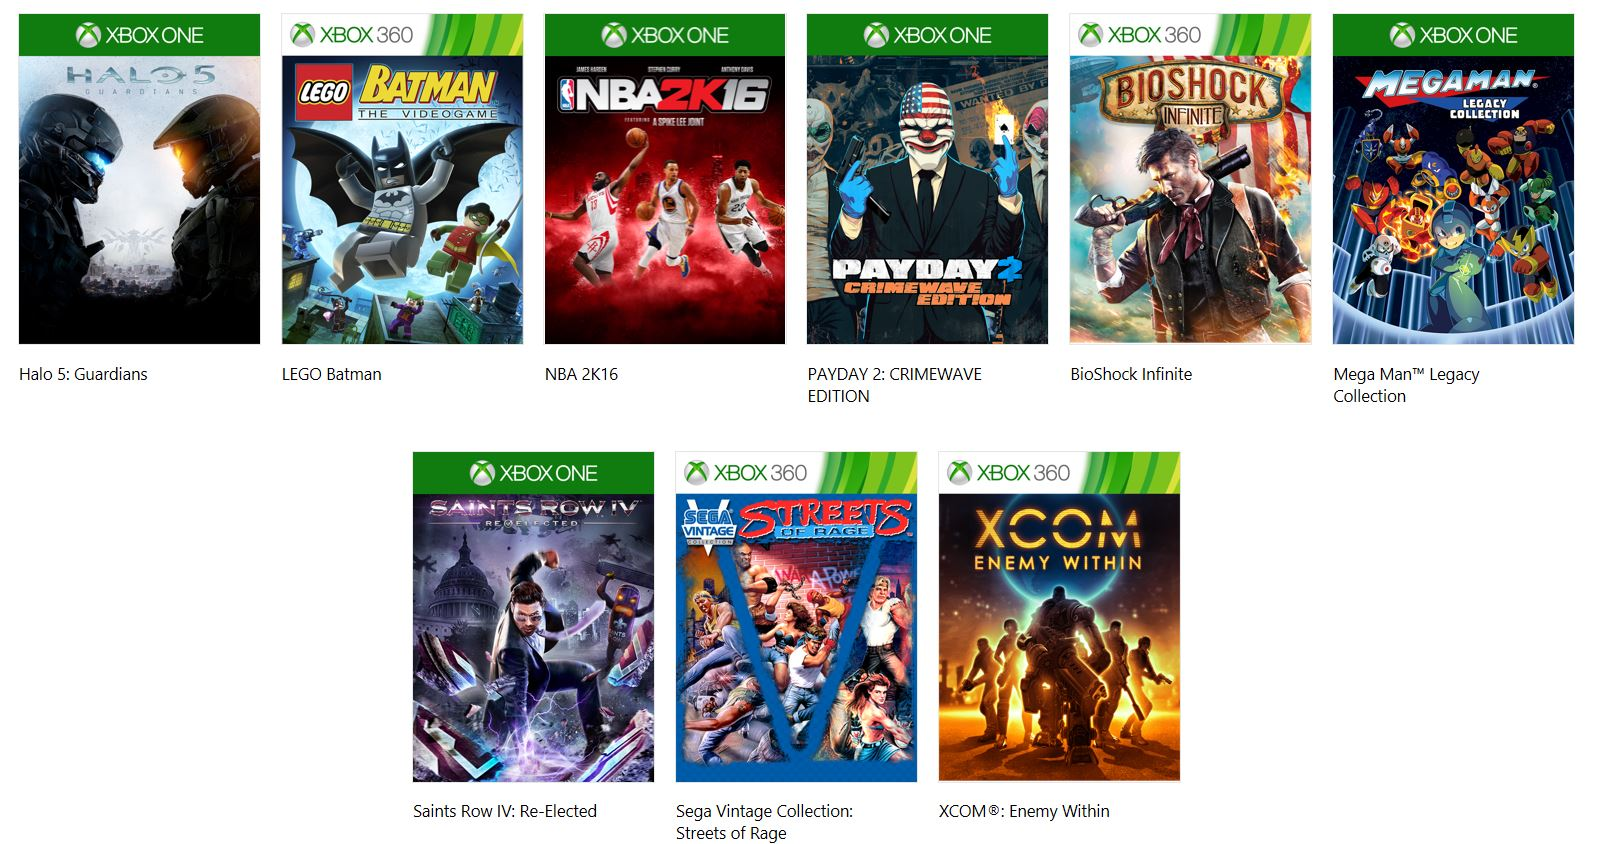 Xbox Game Pass Launches June 1 with 100+ Games